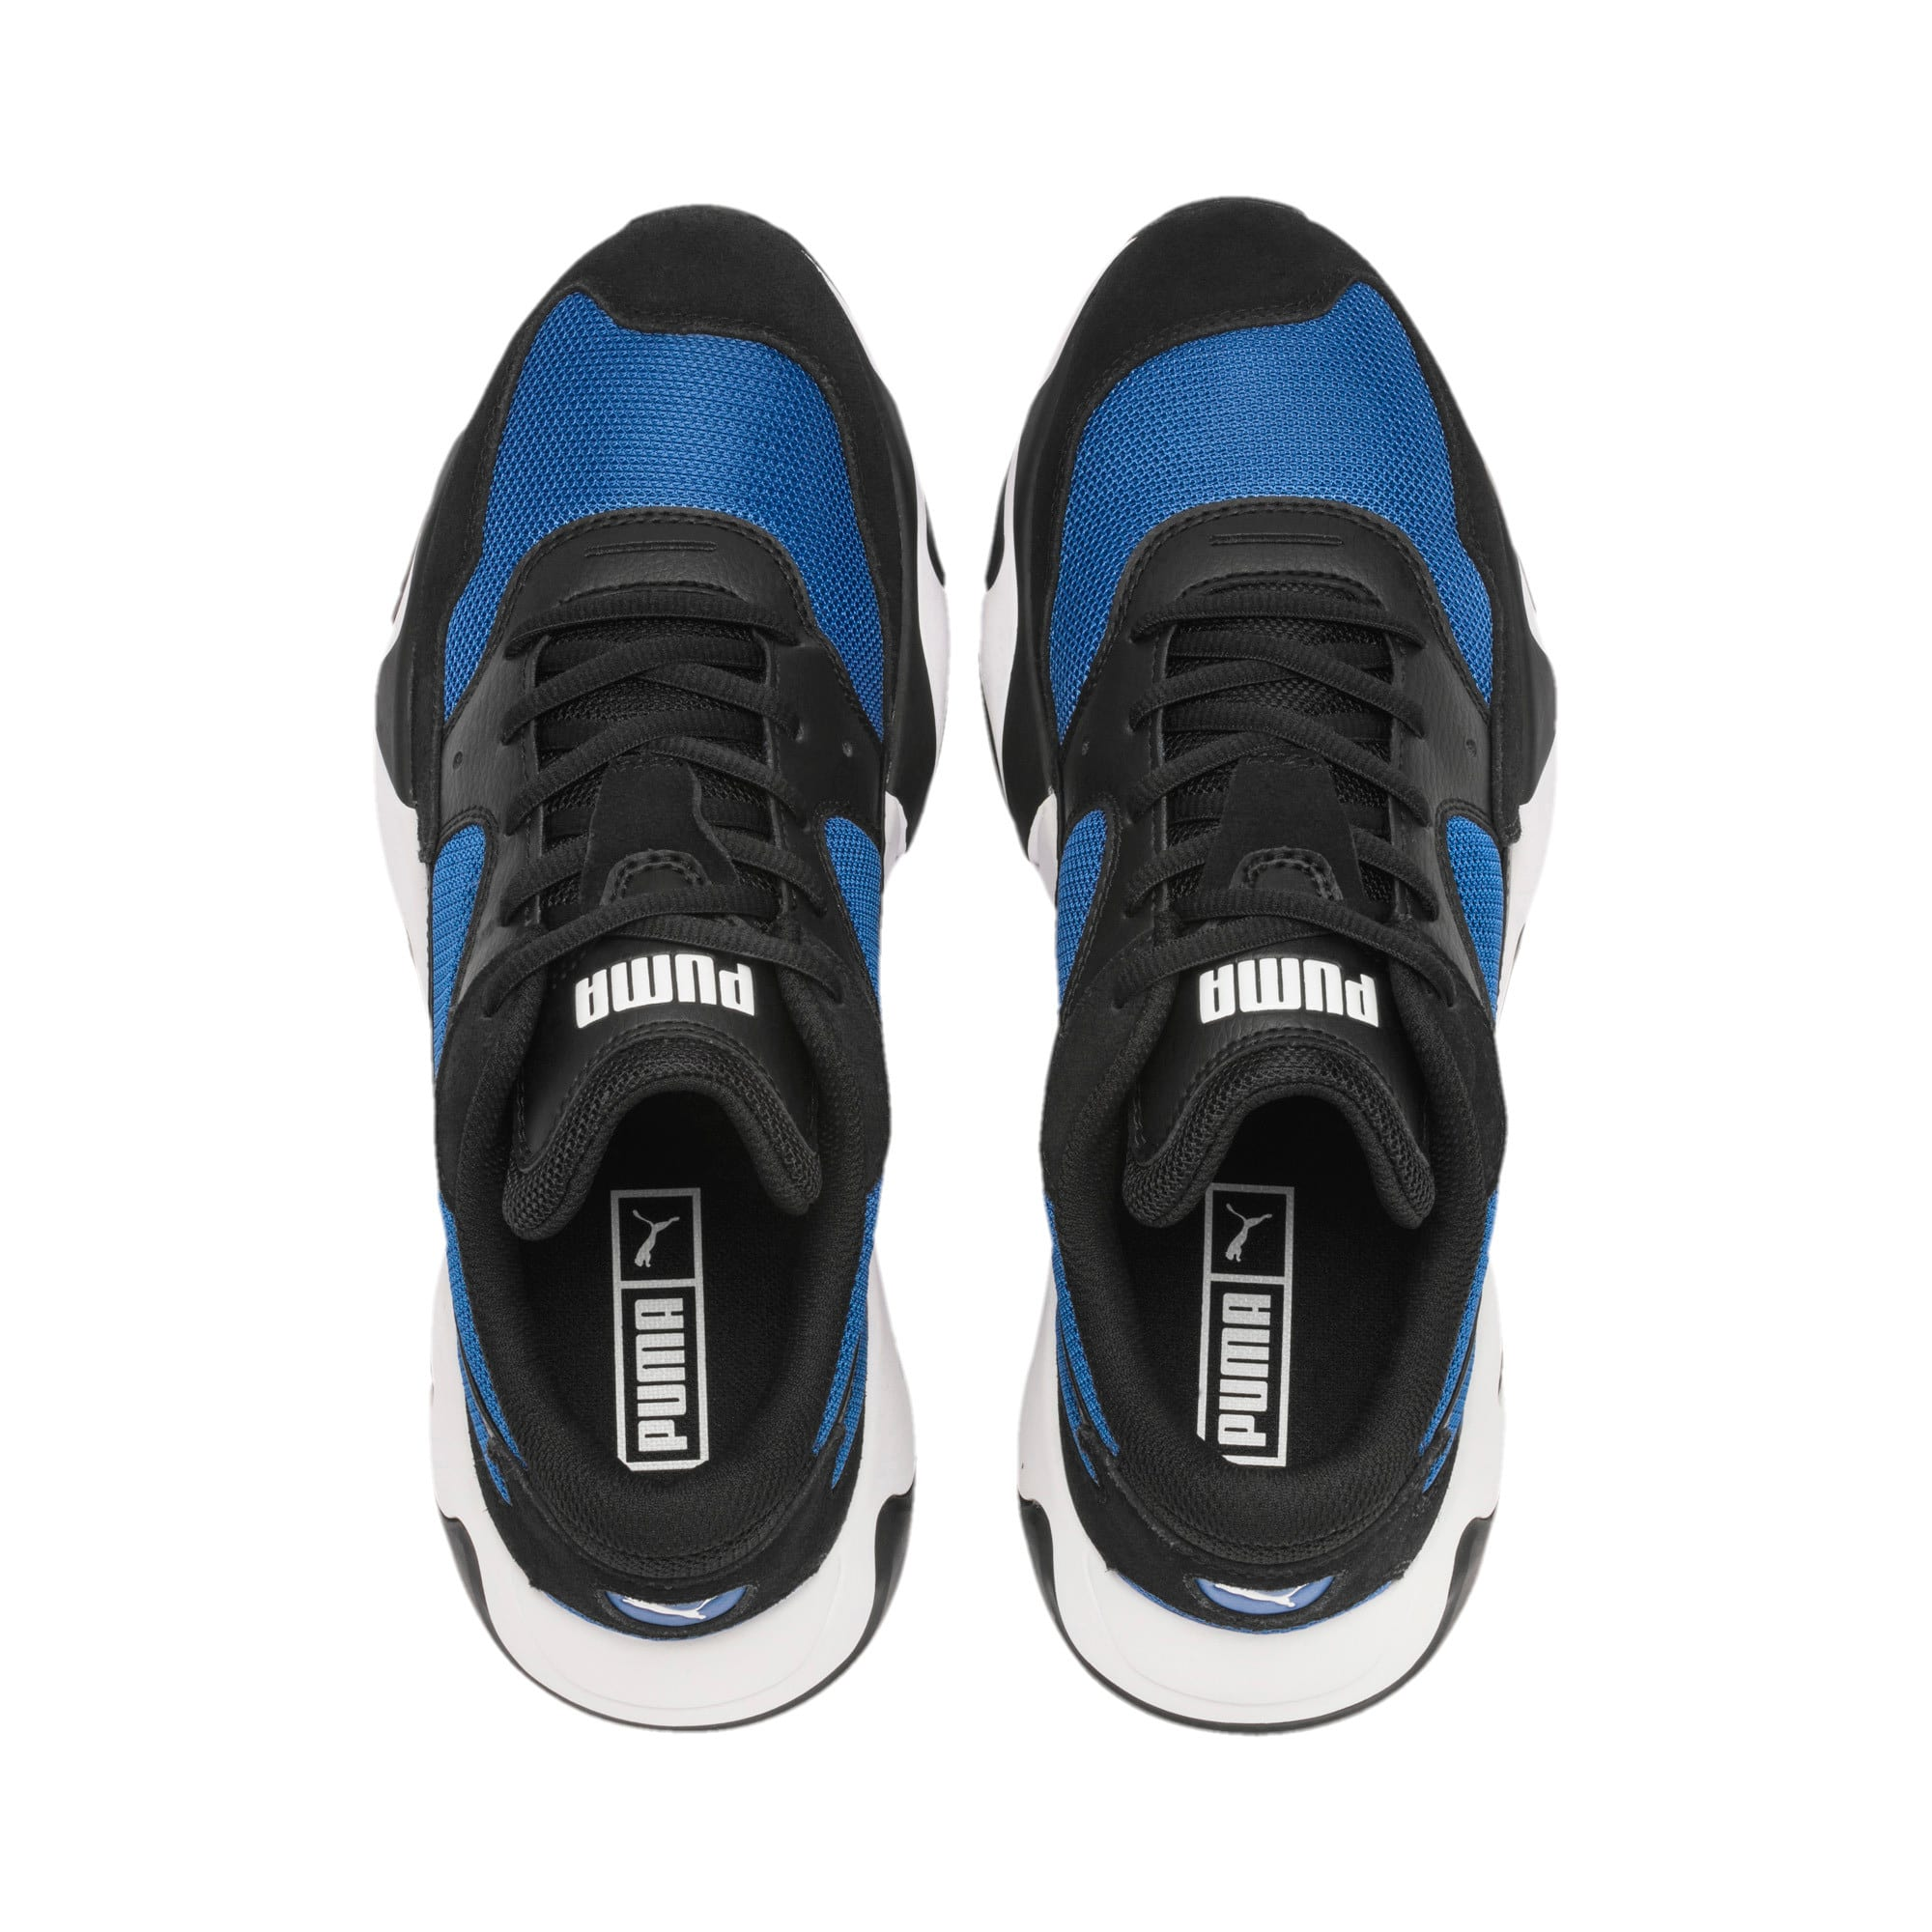 Thumbnail 9 of Storm Adrenaline Sneaker, Puma Black-Galaxy Blue, medium